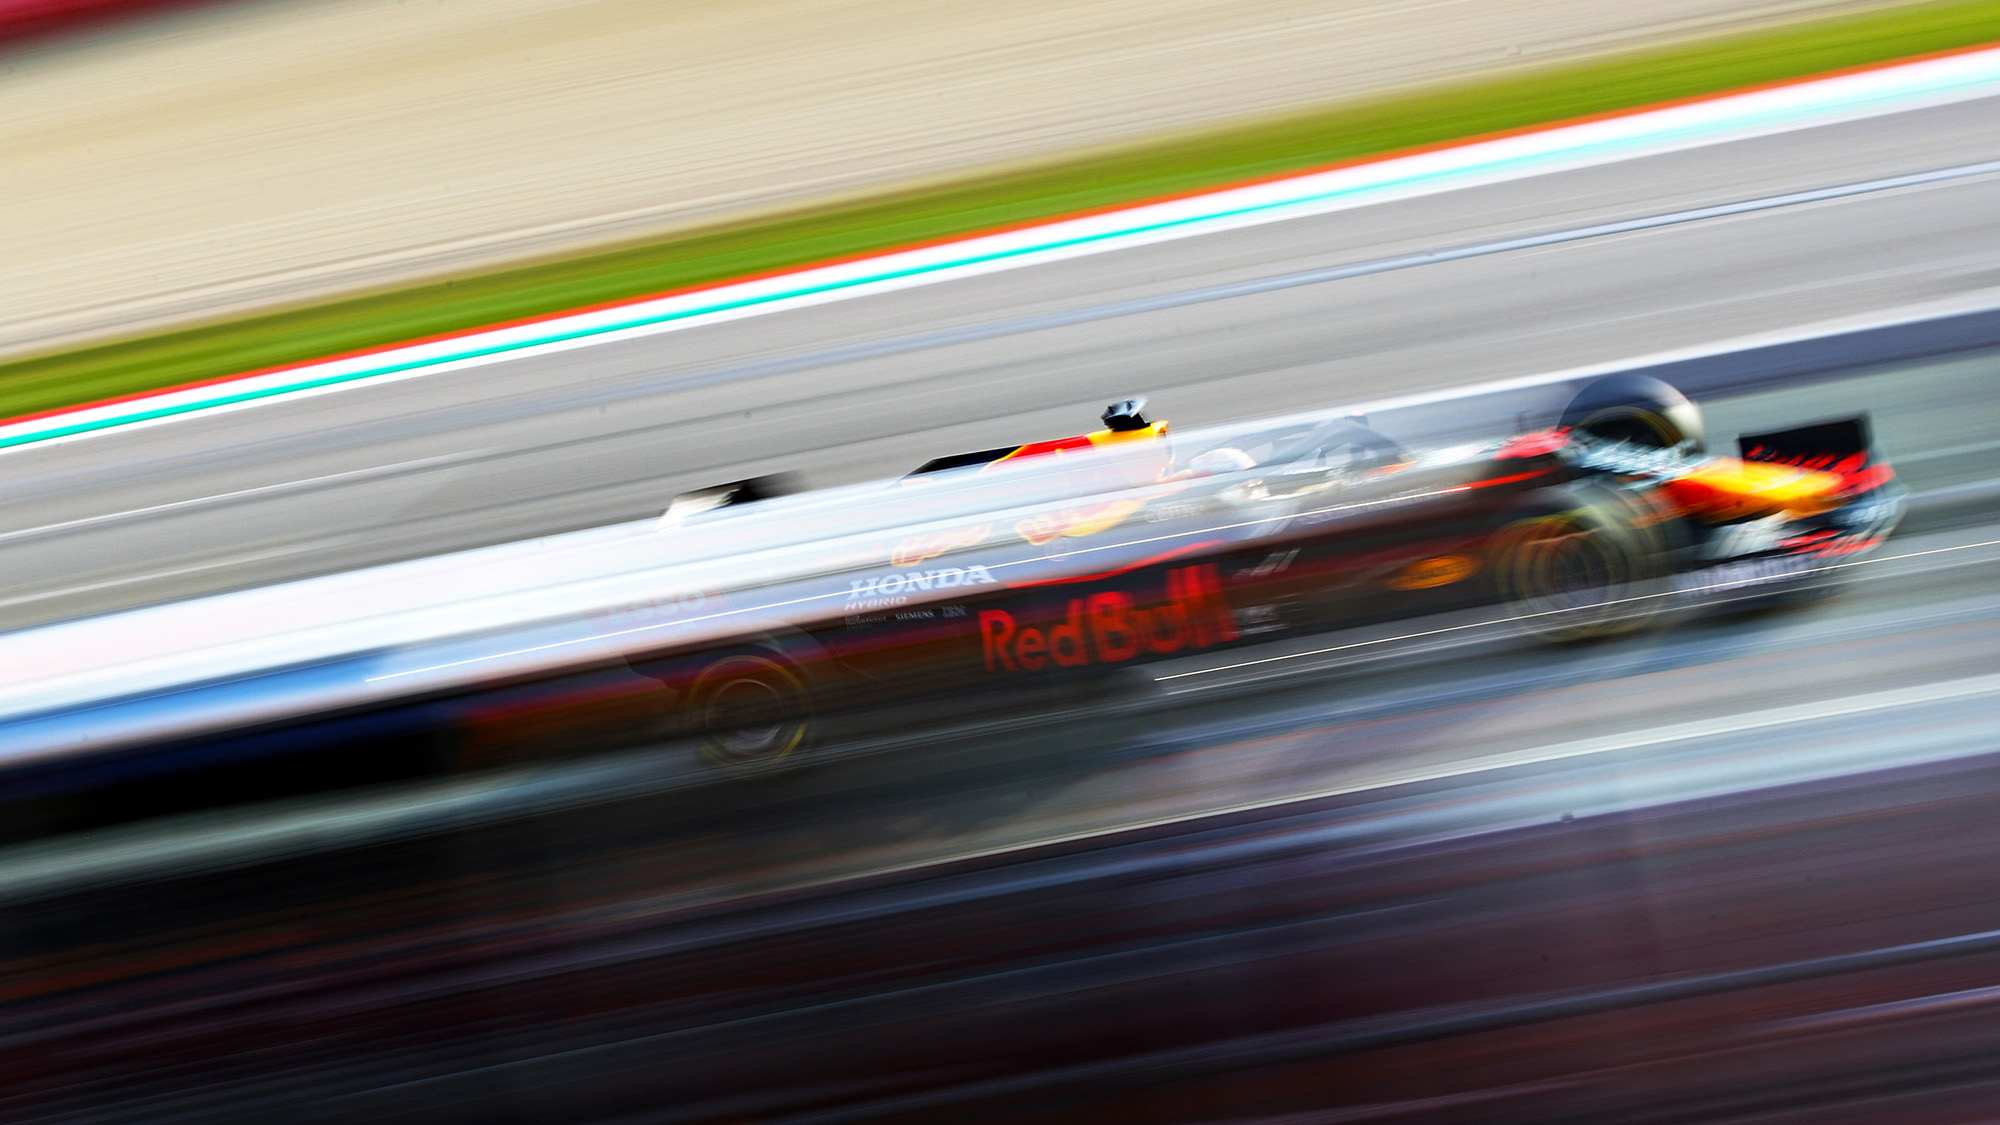 Blurred picture of Max Verstappen at Imola during qualifying for the 2020 f1 emilia Romagna Grand prix